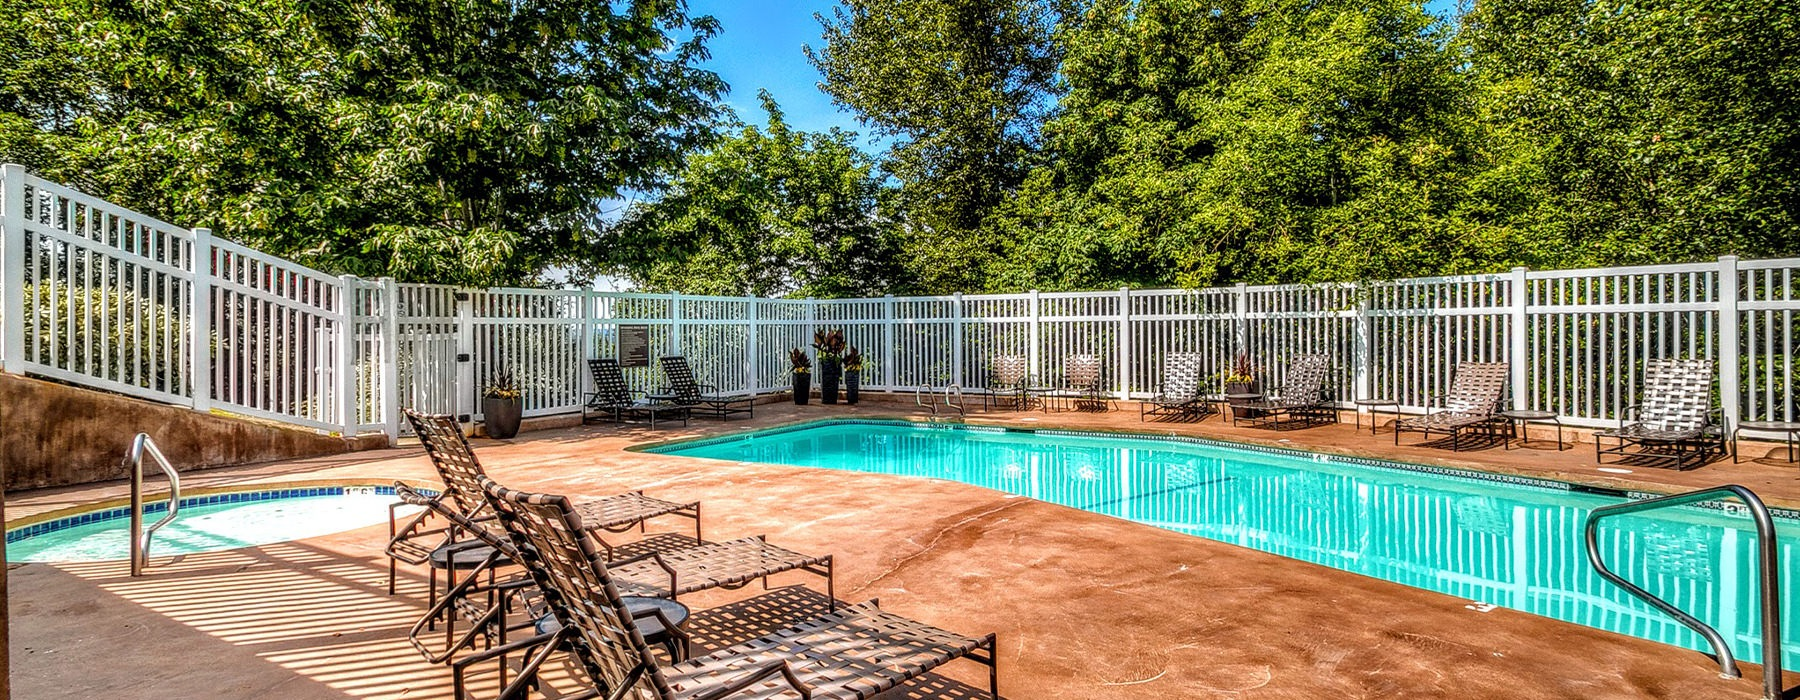 Fenced in pool and hot tub area with lounge chairs